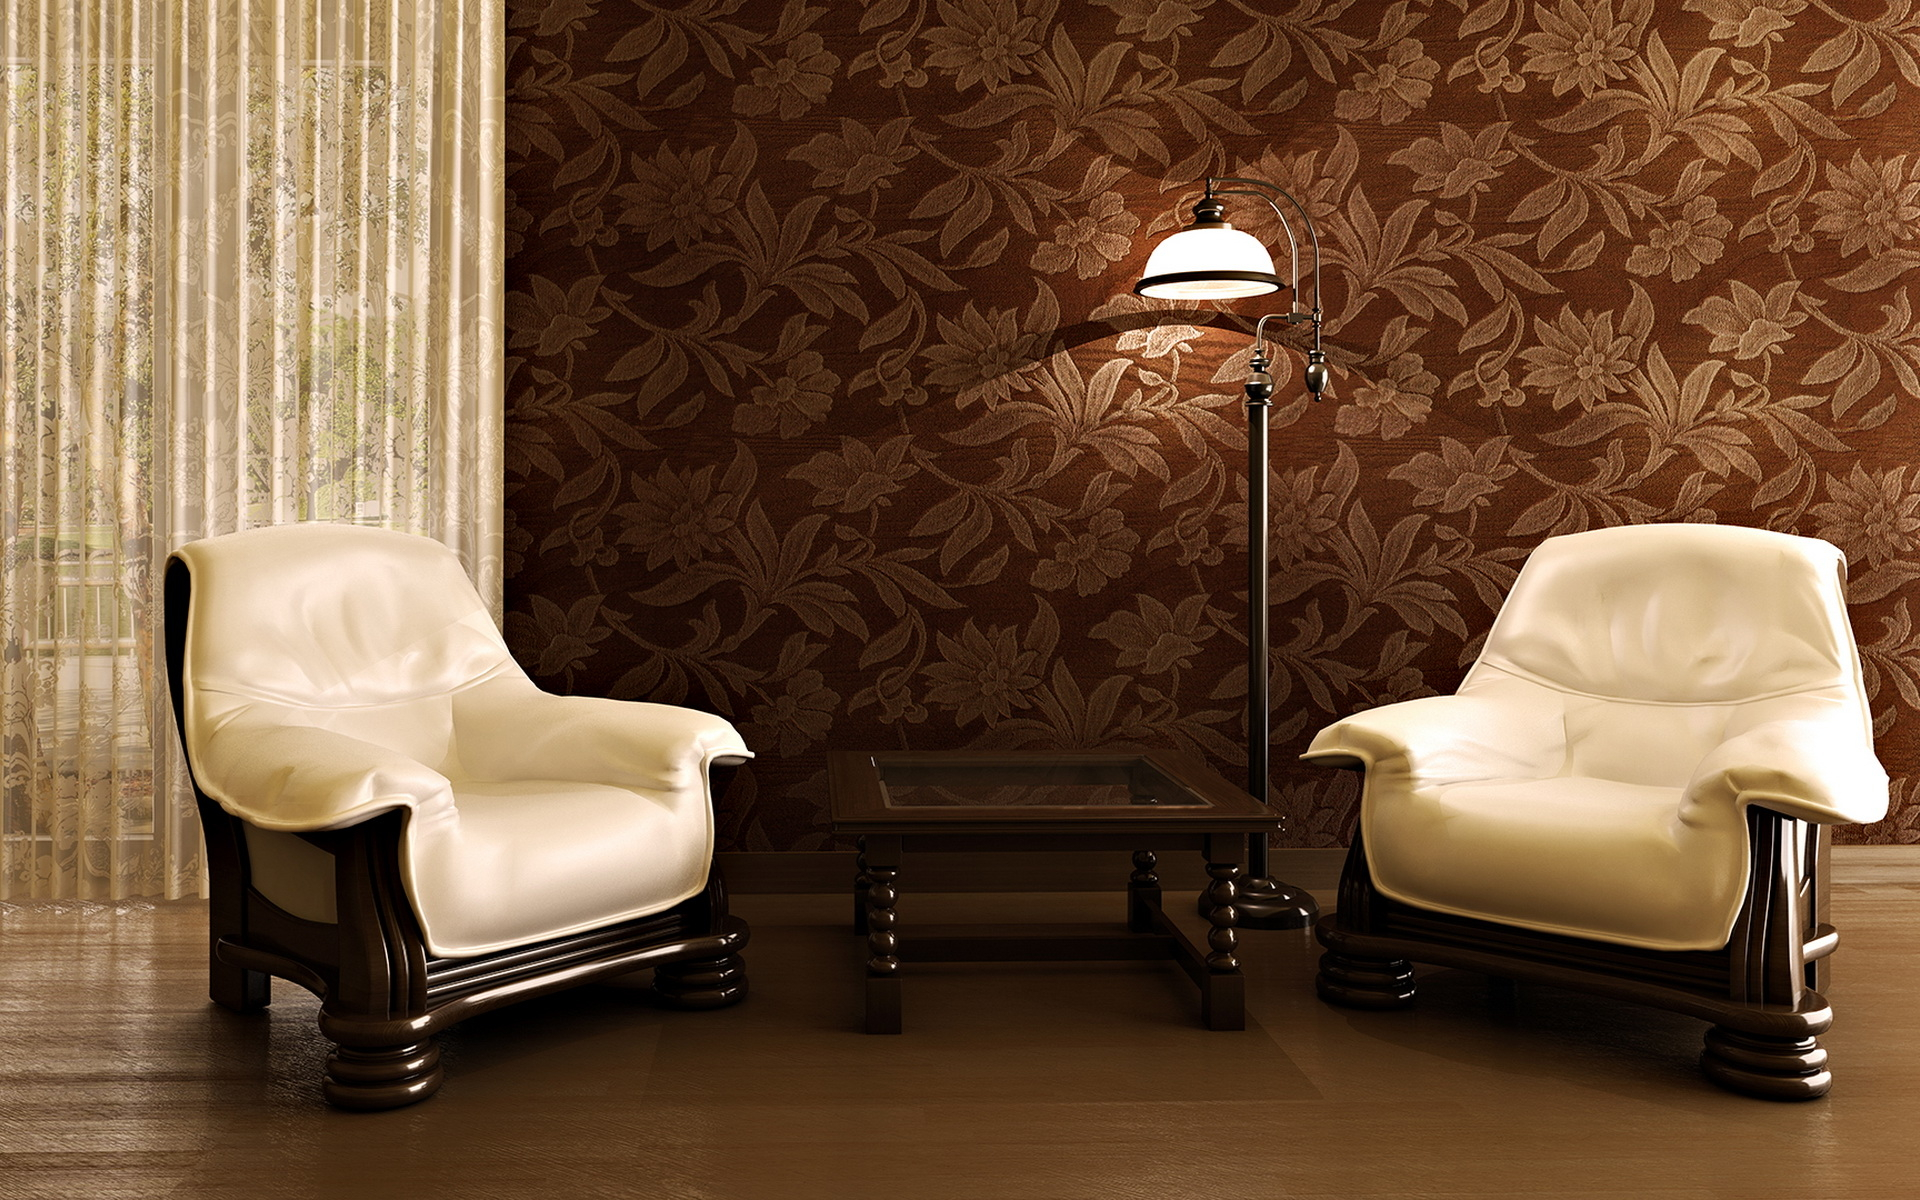 Wallpapers for living room design ideas in uk for Ideas for a living room design